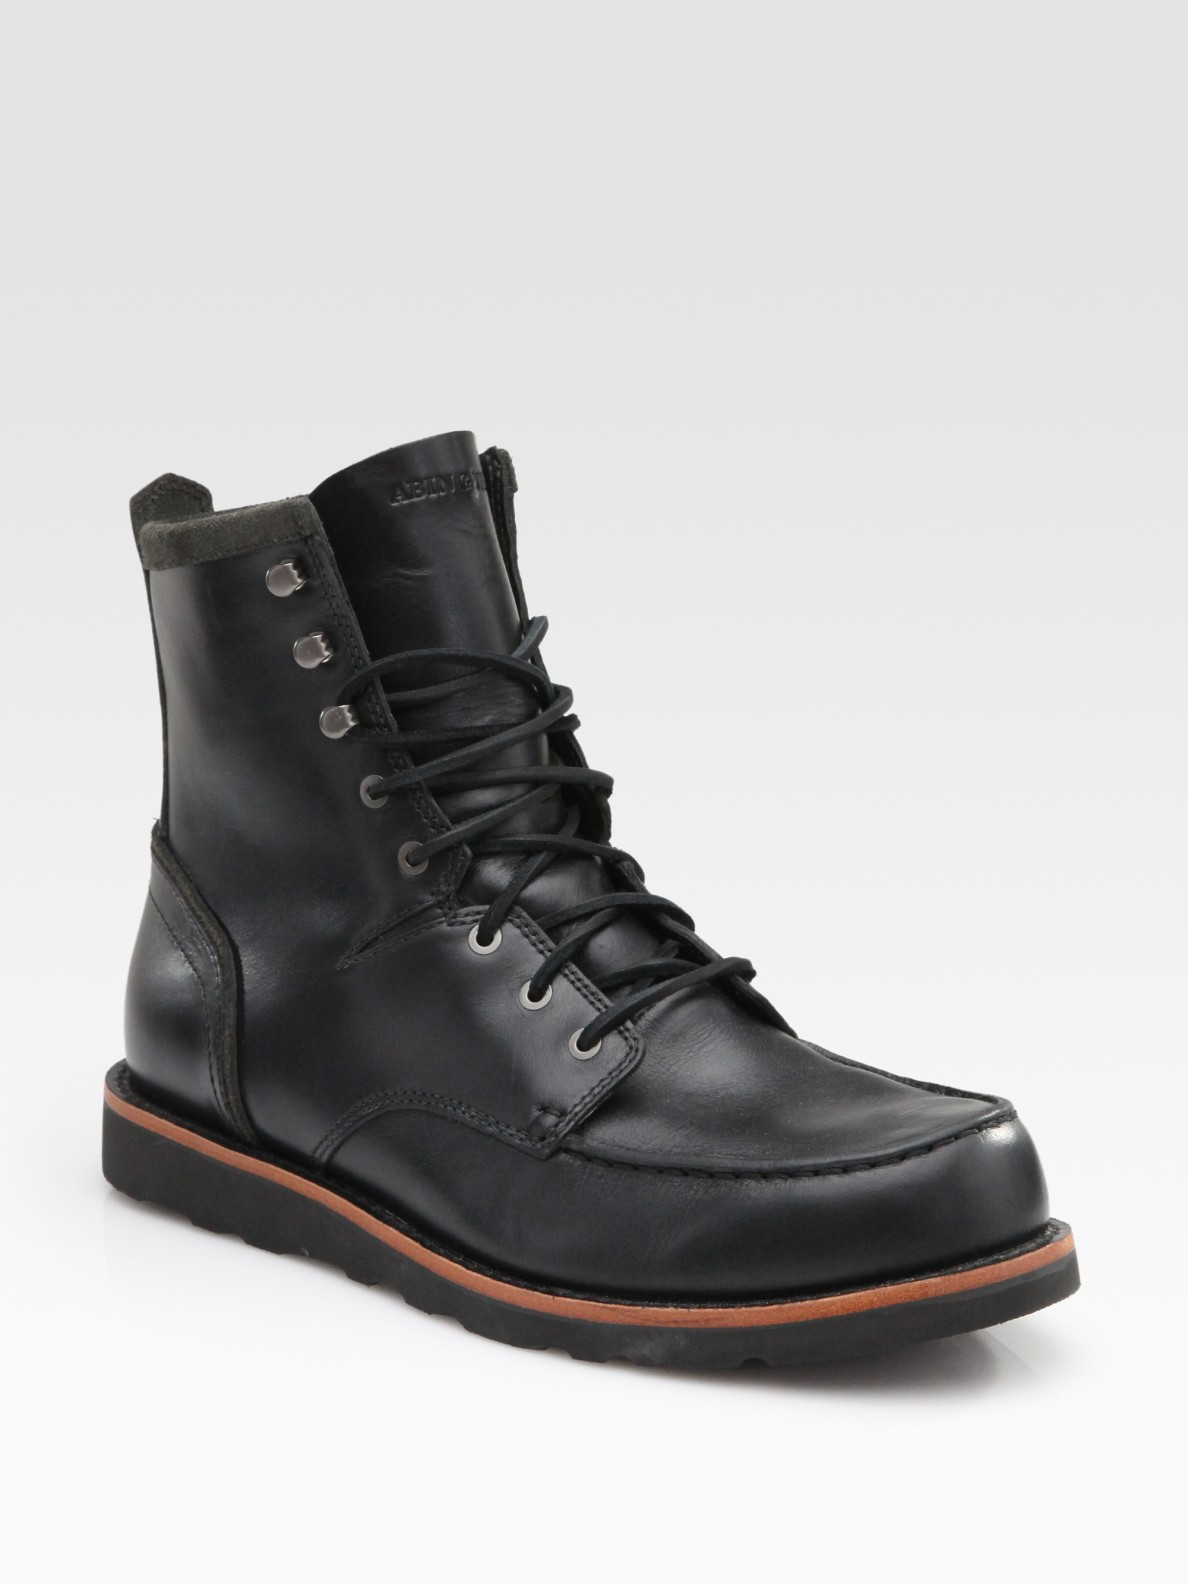 Timberland Abington Farmers Boots In Black For Men Lyst